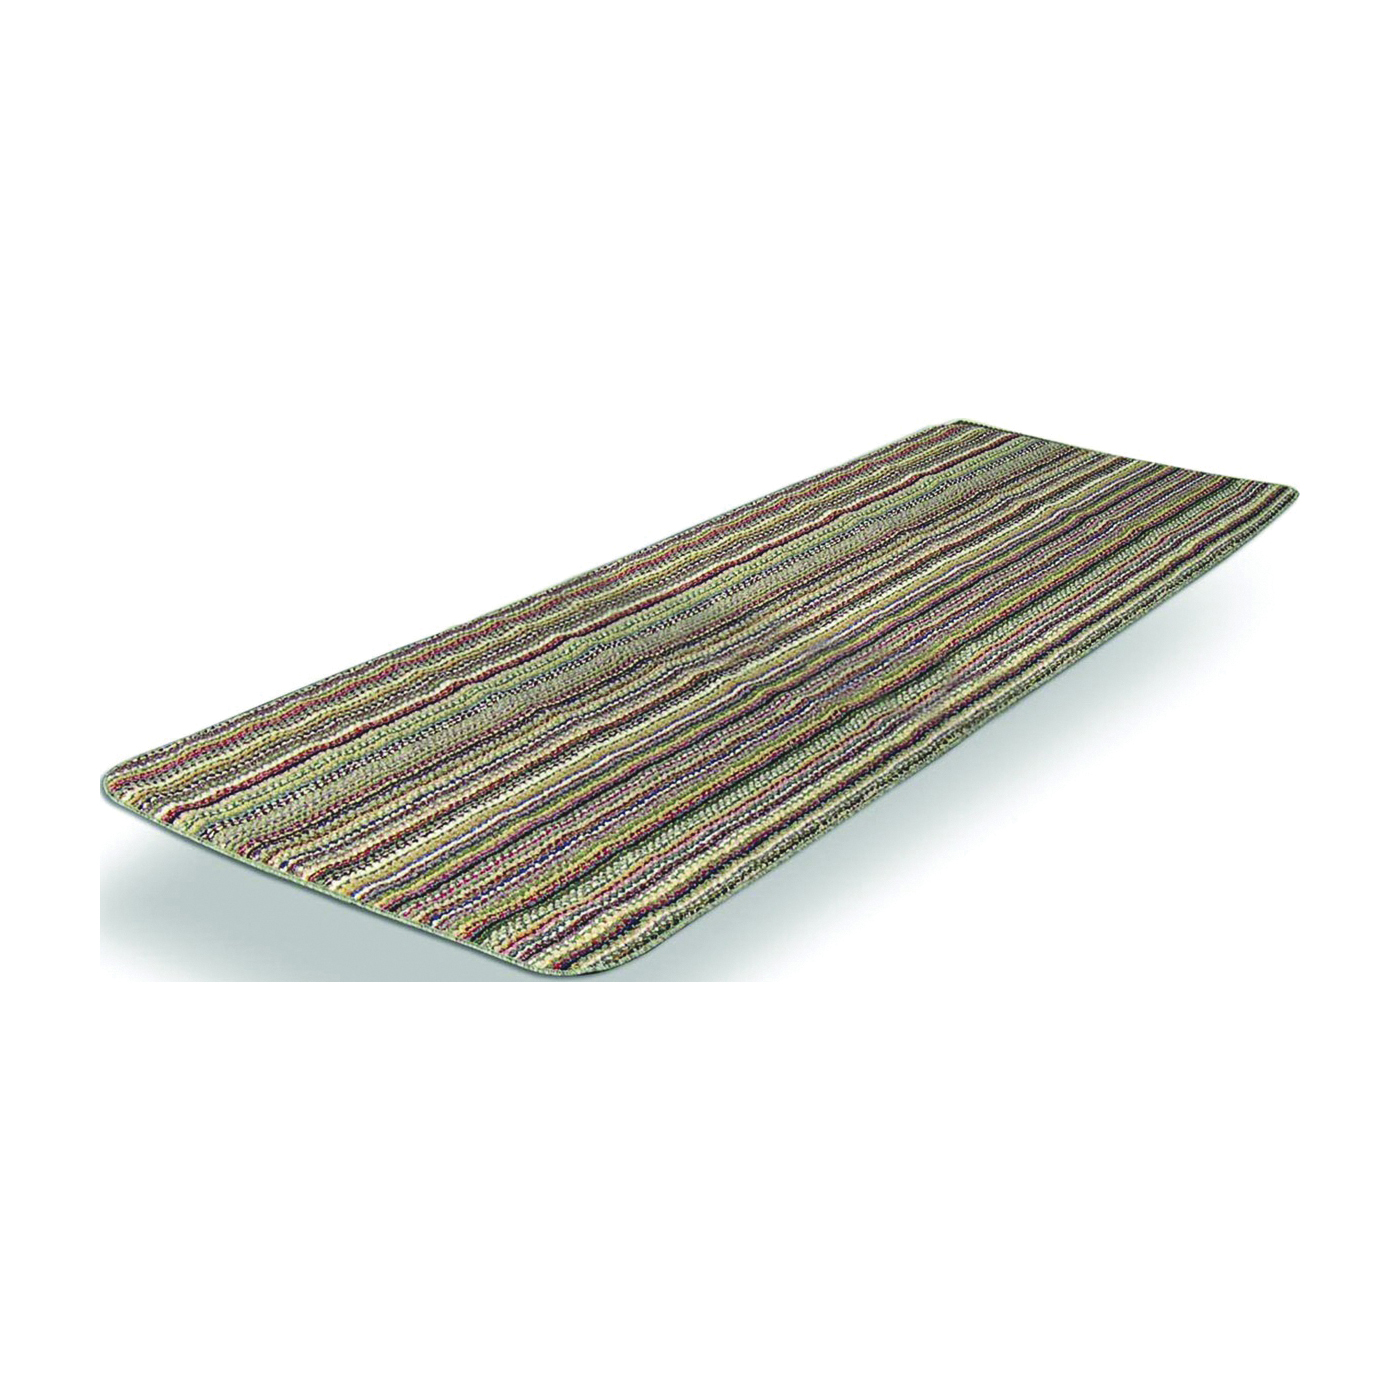 Picture of WJ DENNIS SSAS2472 Mat Carpet, 72 in L, 24 in W, Rectangular, Assorted